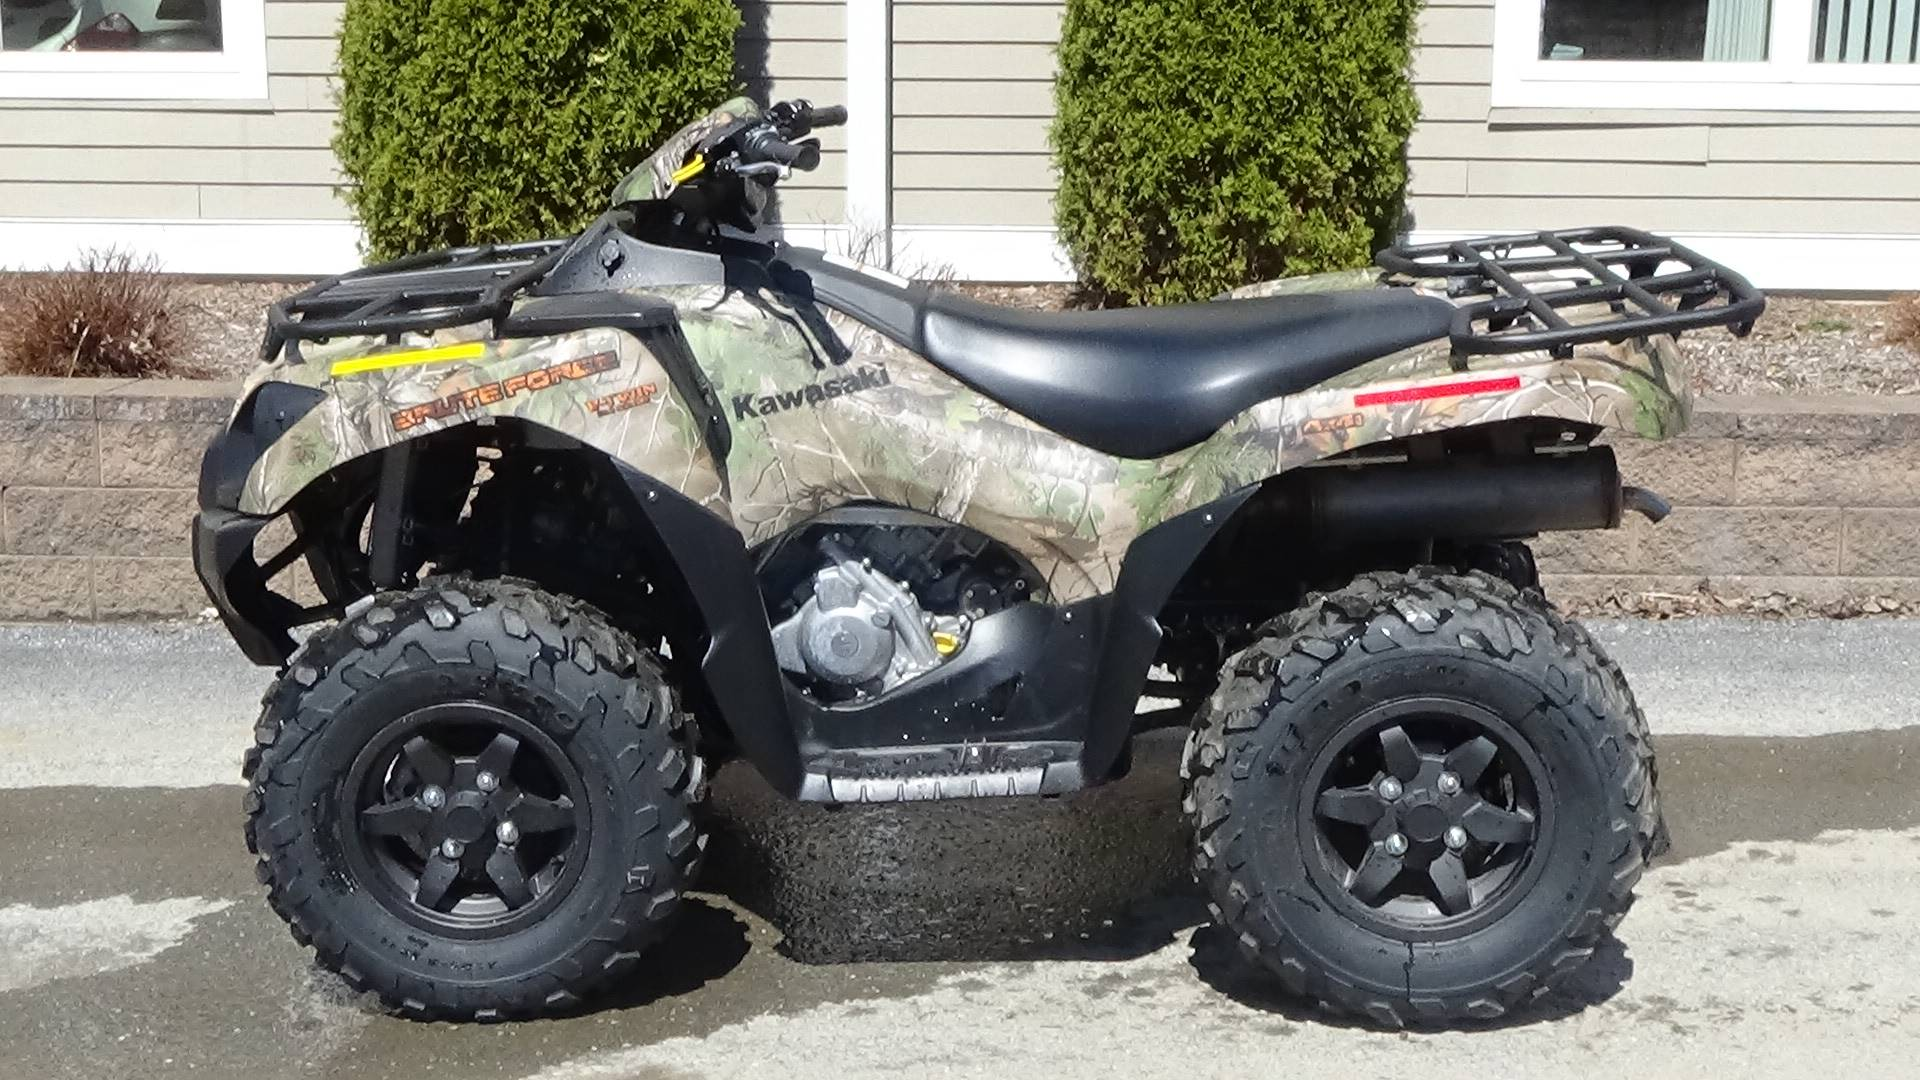 2019 Kawasaki Brute Force 750 4x4i EPS Camo in Bennington, Vermont - Photo 1